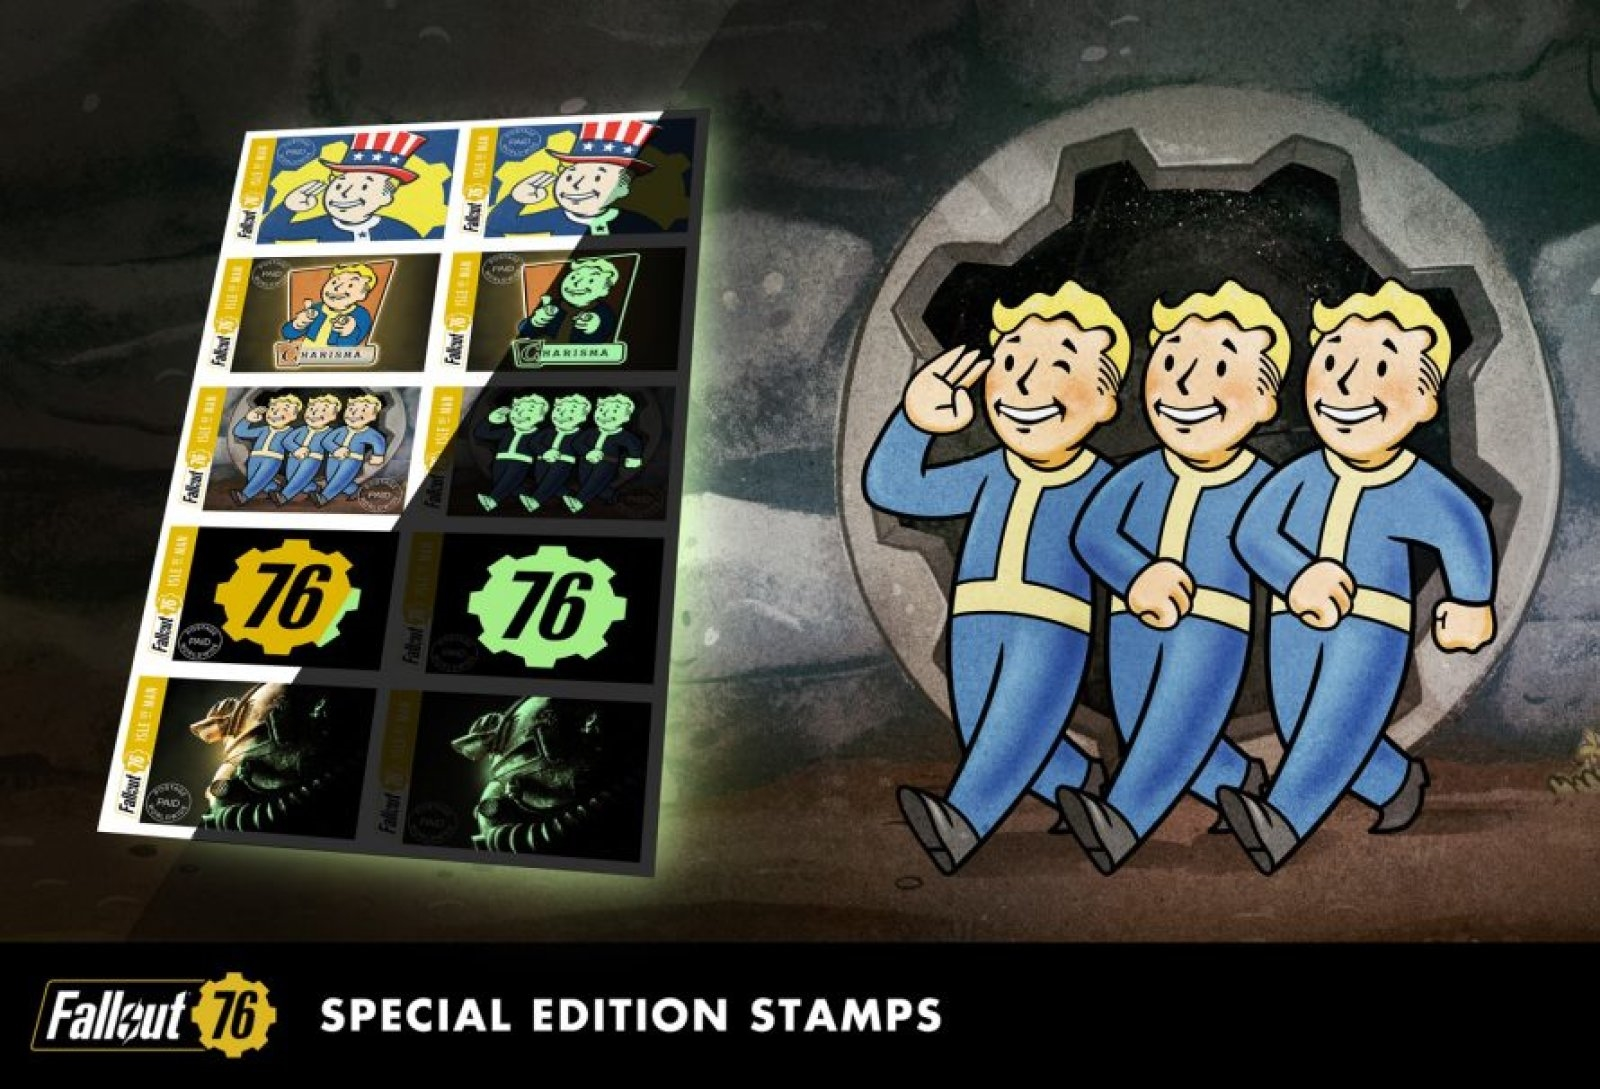 'Fallout 76' gets glow-in-the-dark postage stamps in the UK and Europe | DeviceDaily.com